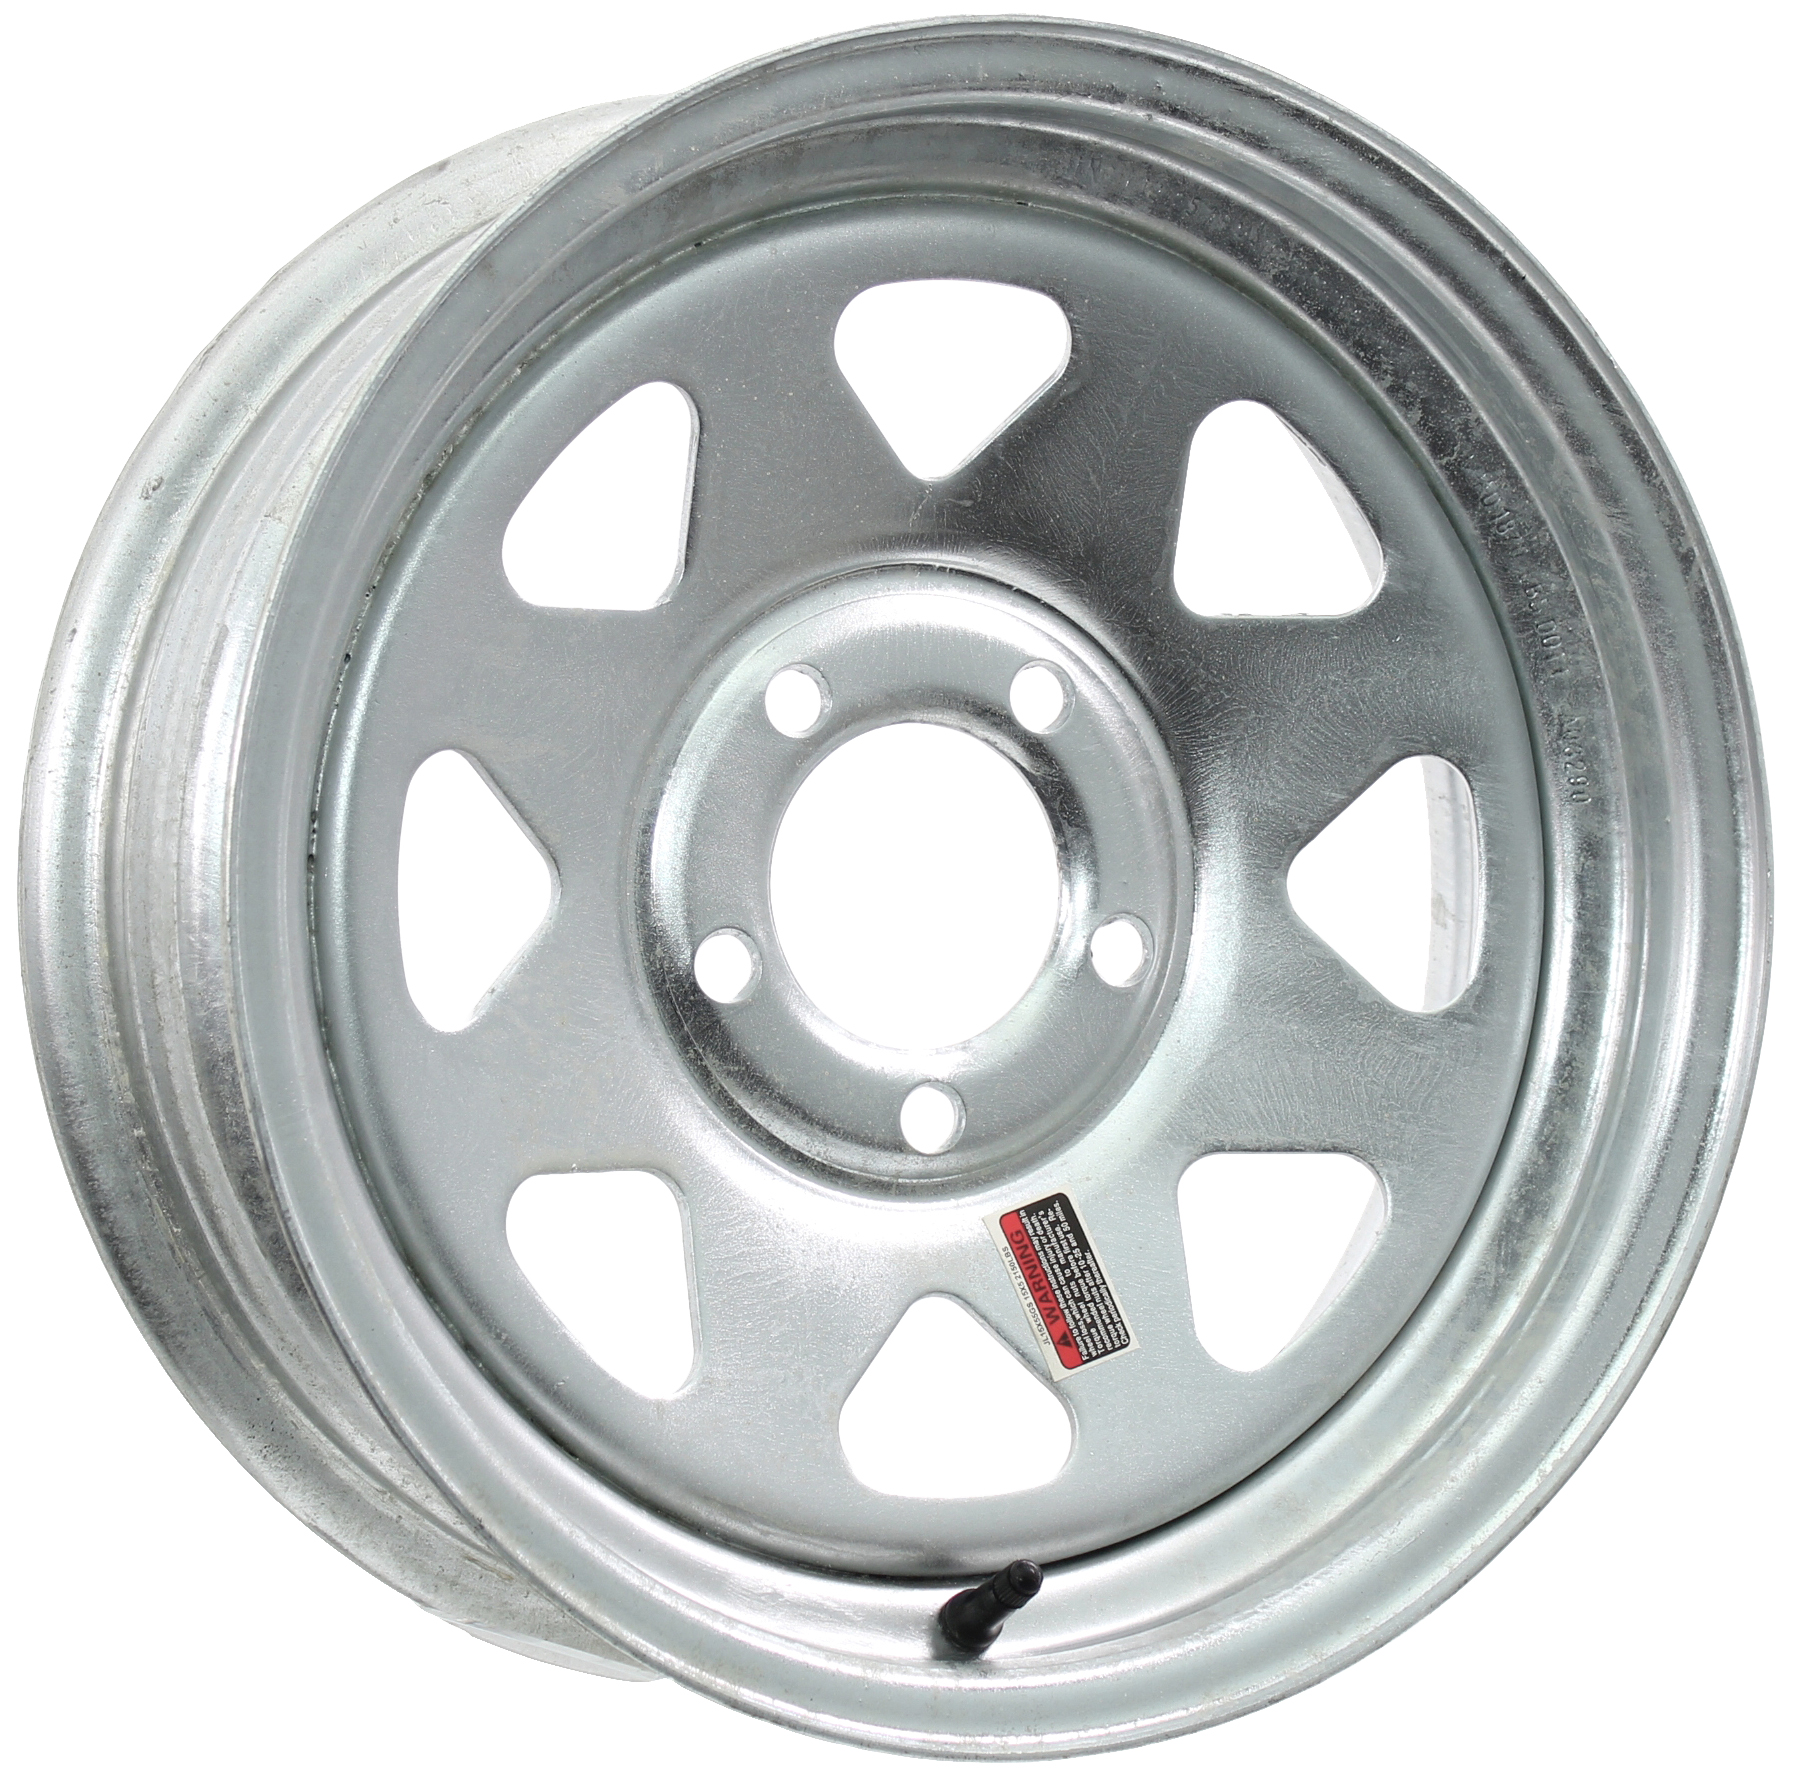 15x6 5-Lug Galvanized Spoke Steel Trailer Wheel Image